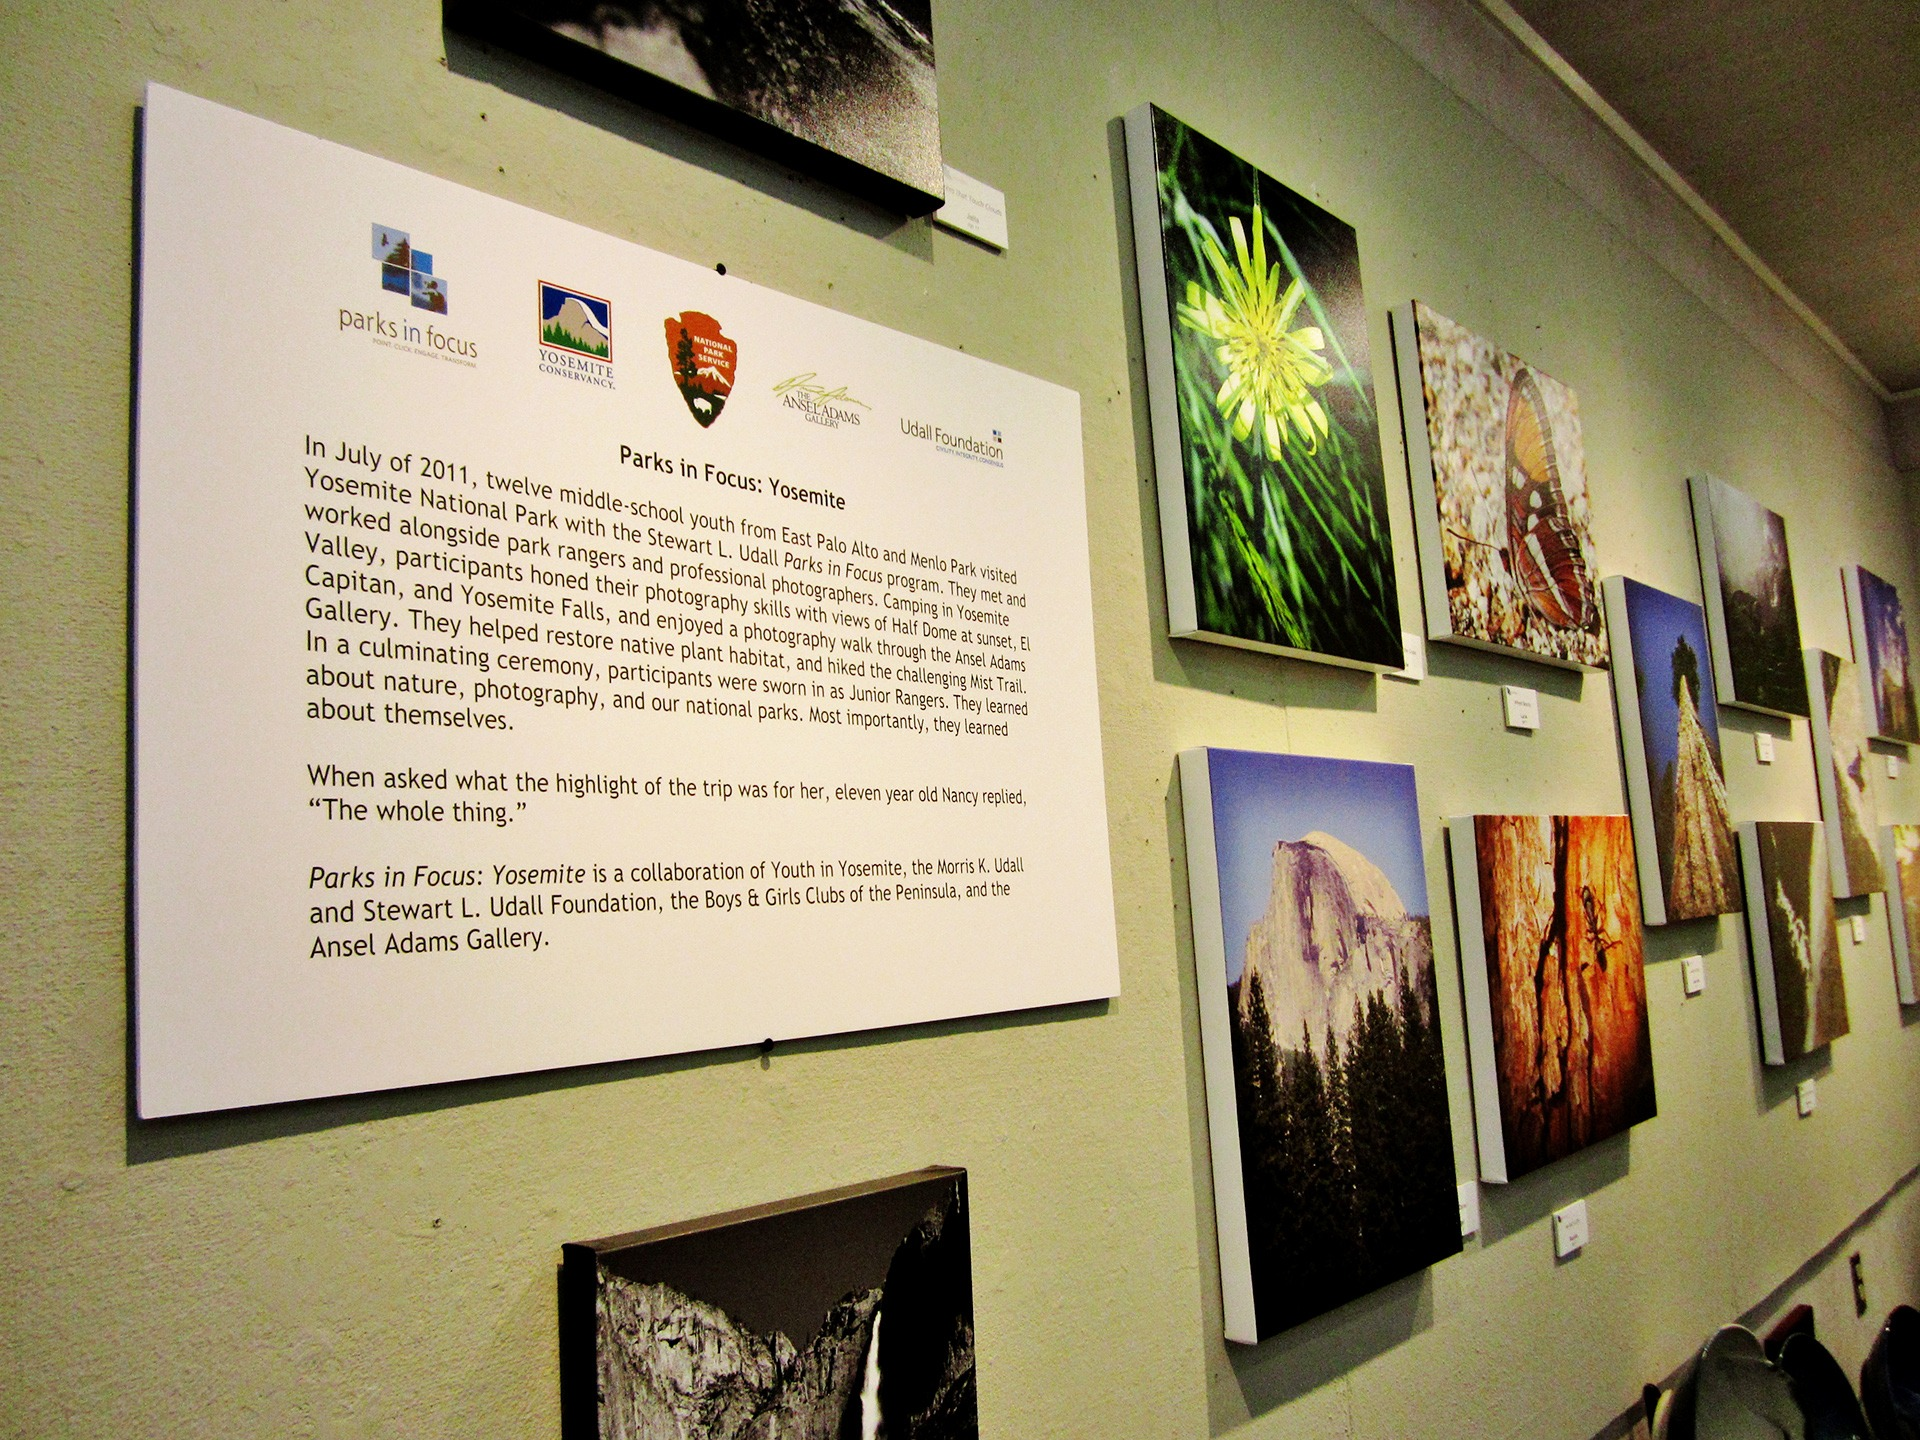 The inaugural Parks in Focus exhibit at The Ansel Adams Gallery in Yosemite Valley.